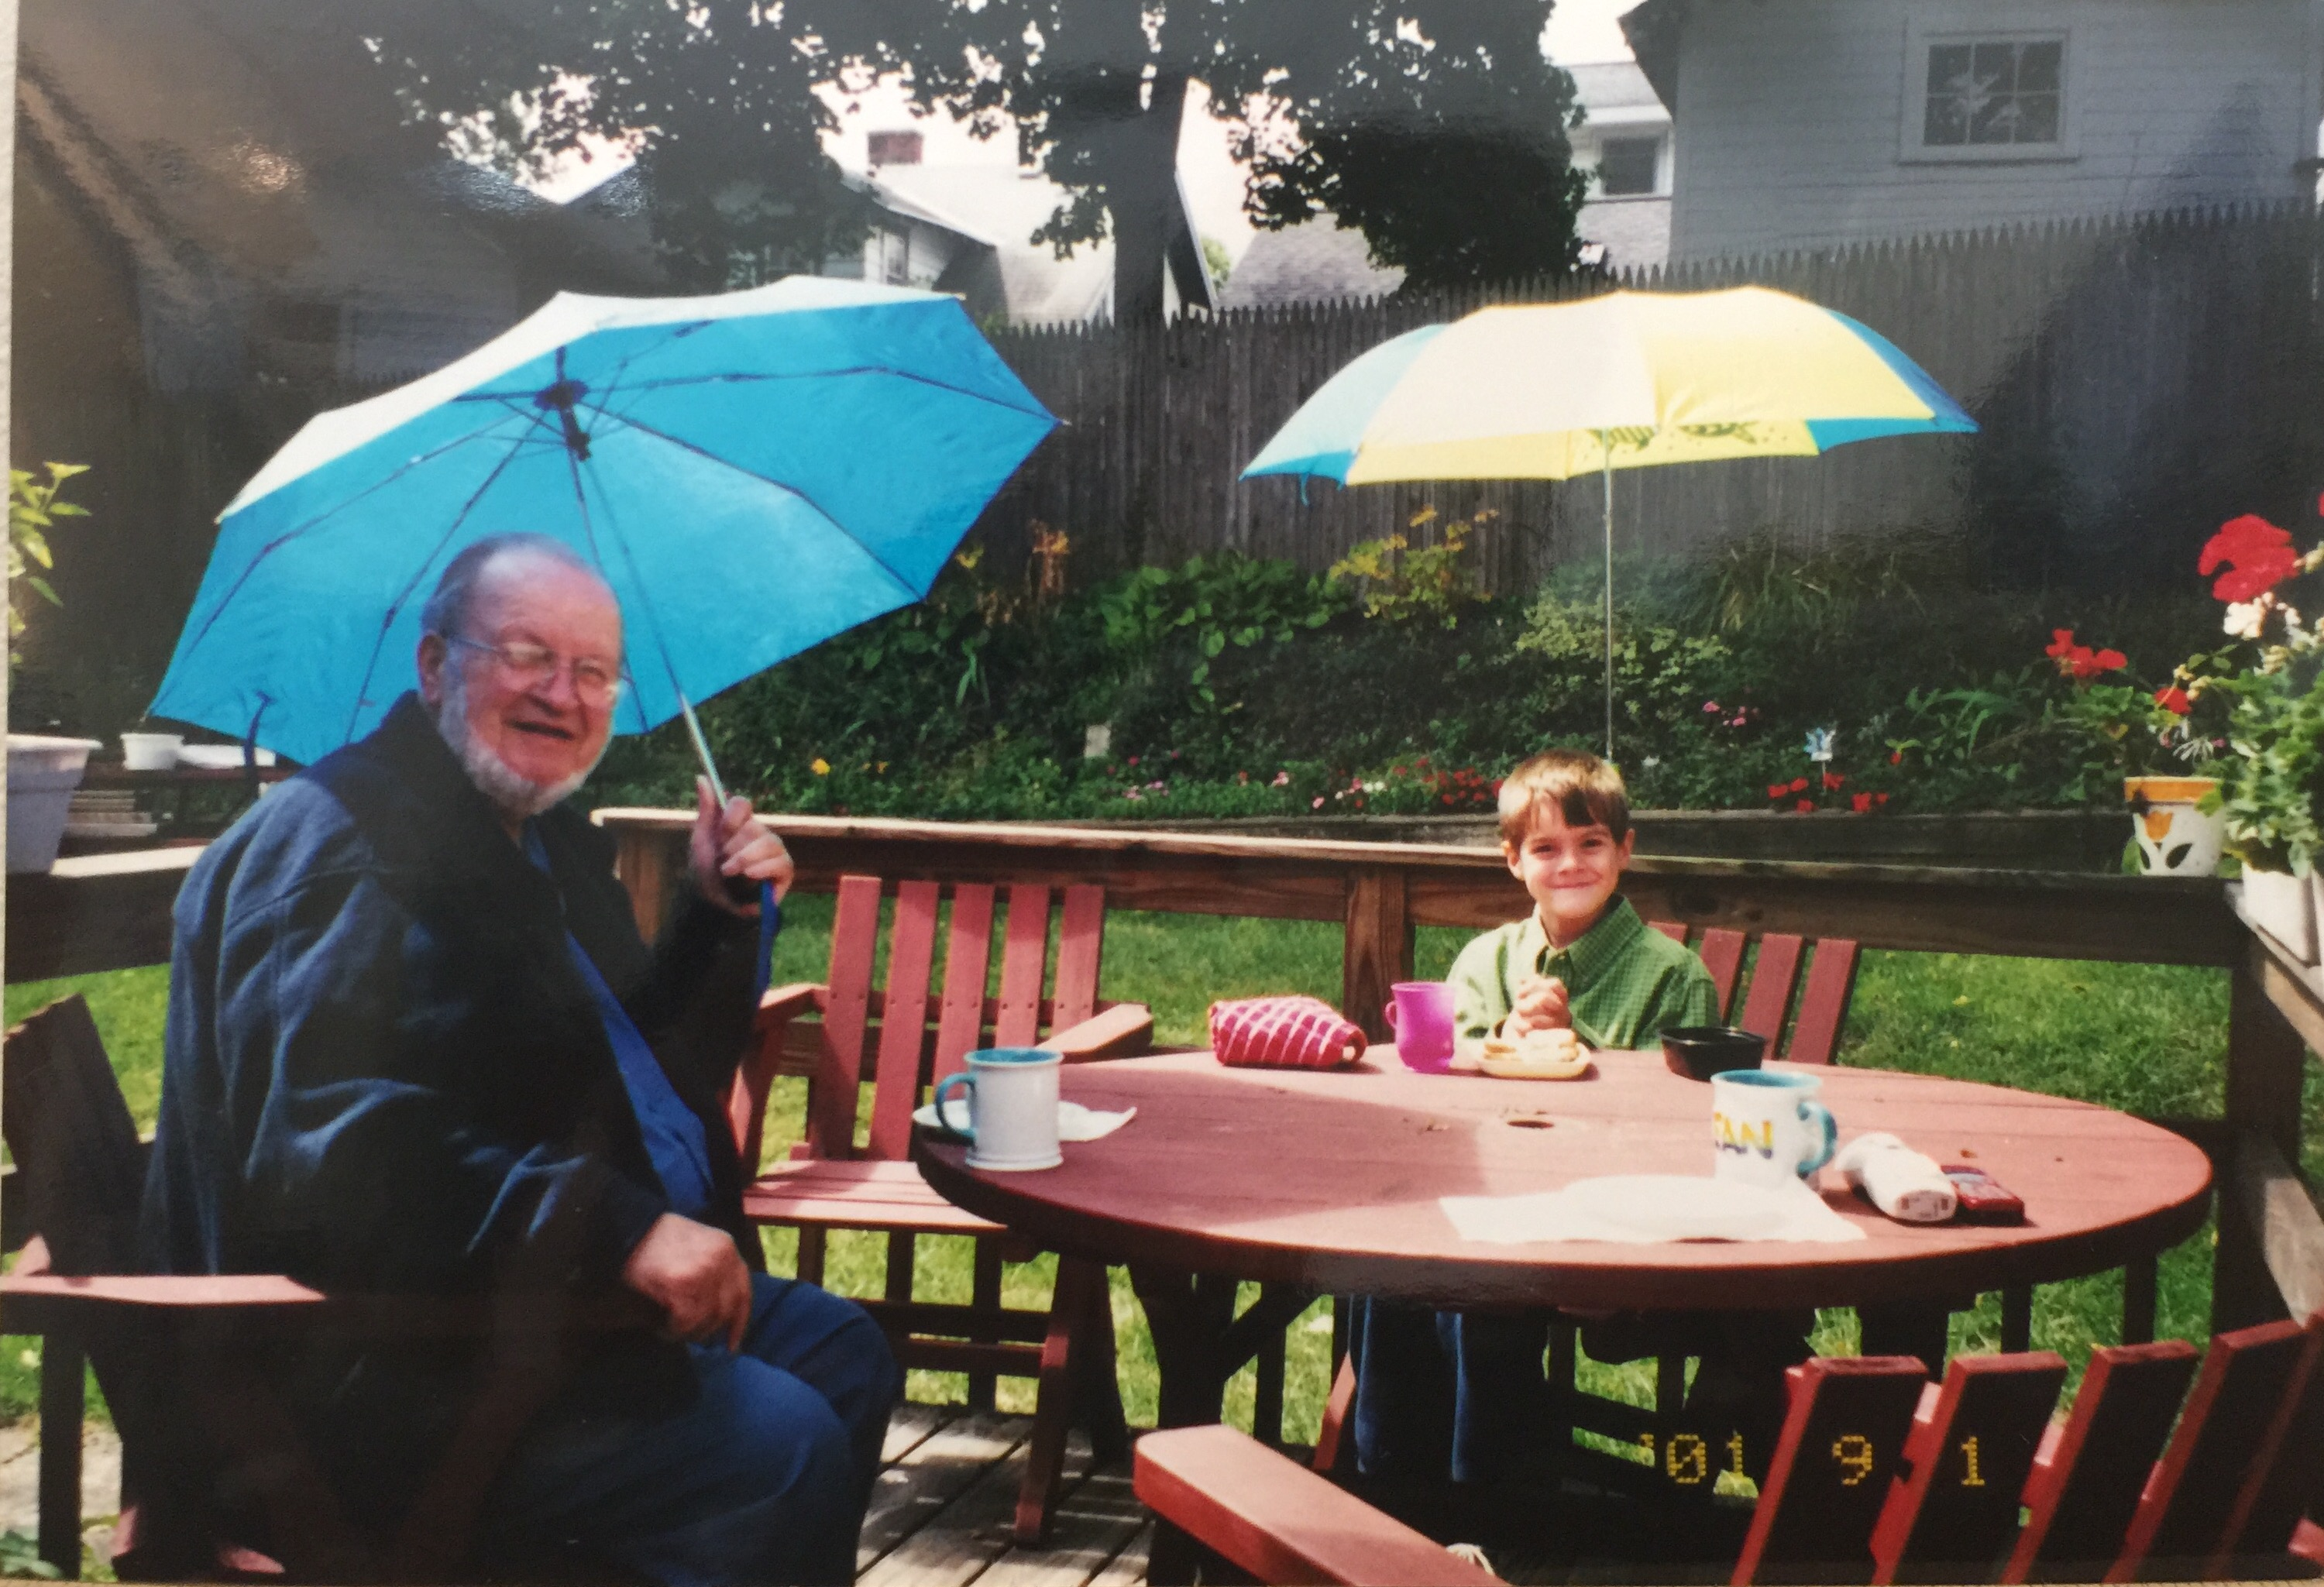 Spending time with Grandpa while enjoying our new umbrellas!